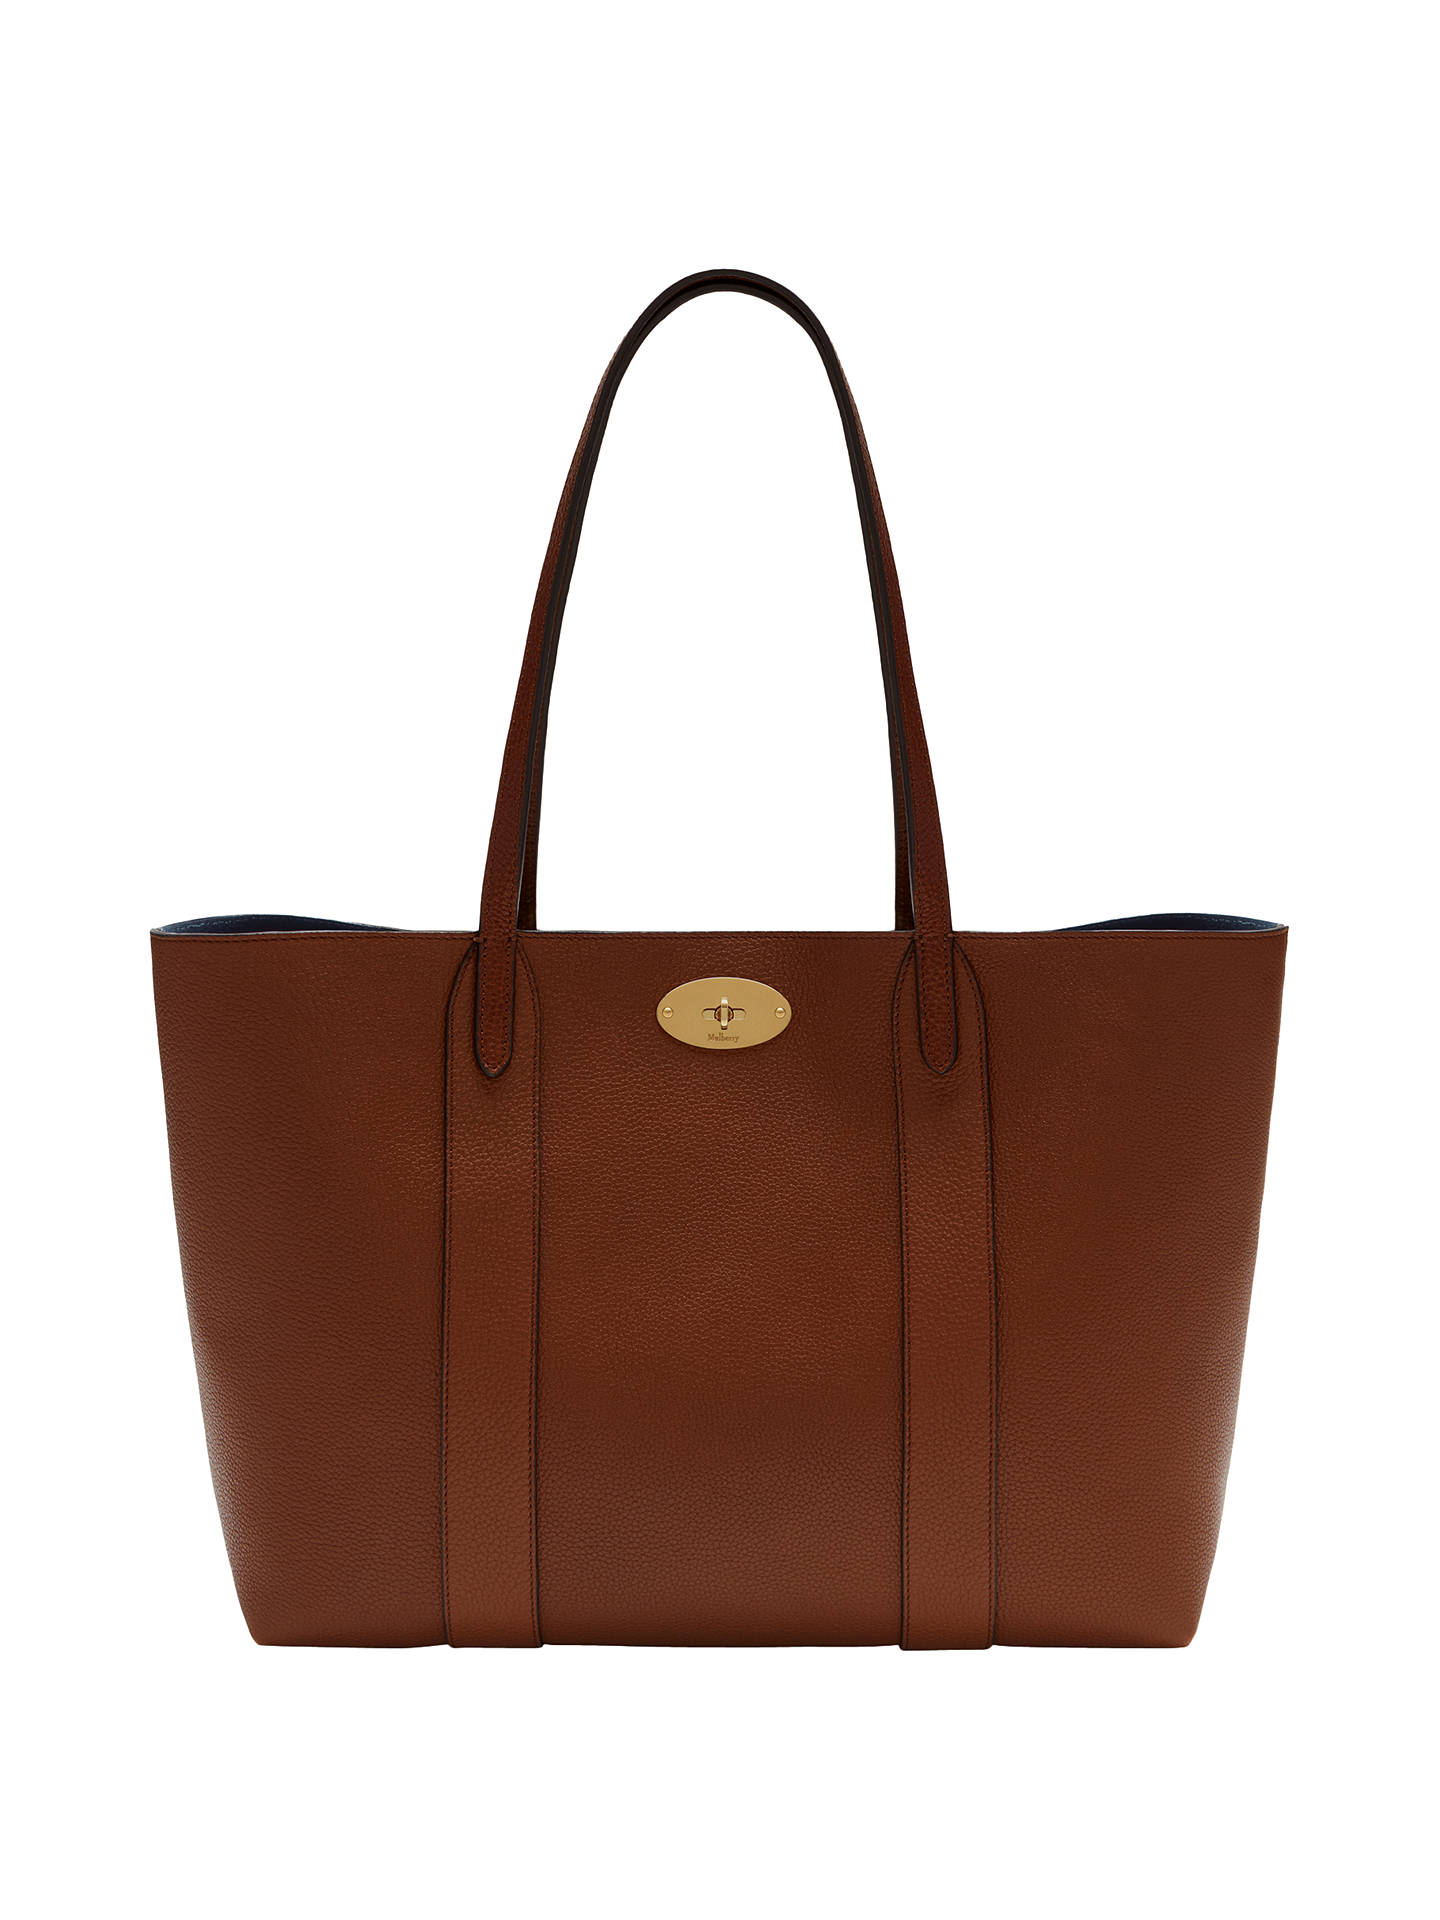 1c11444400 Buy Mulberry Bayswater Leather Tote Bag